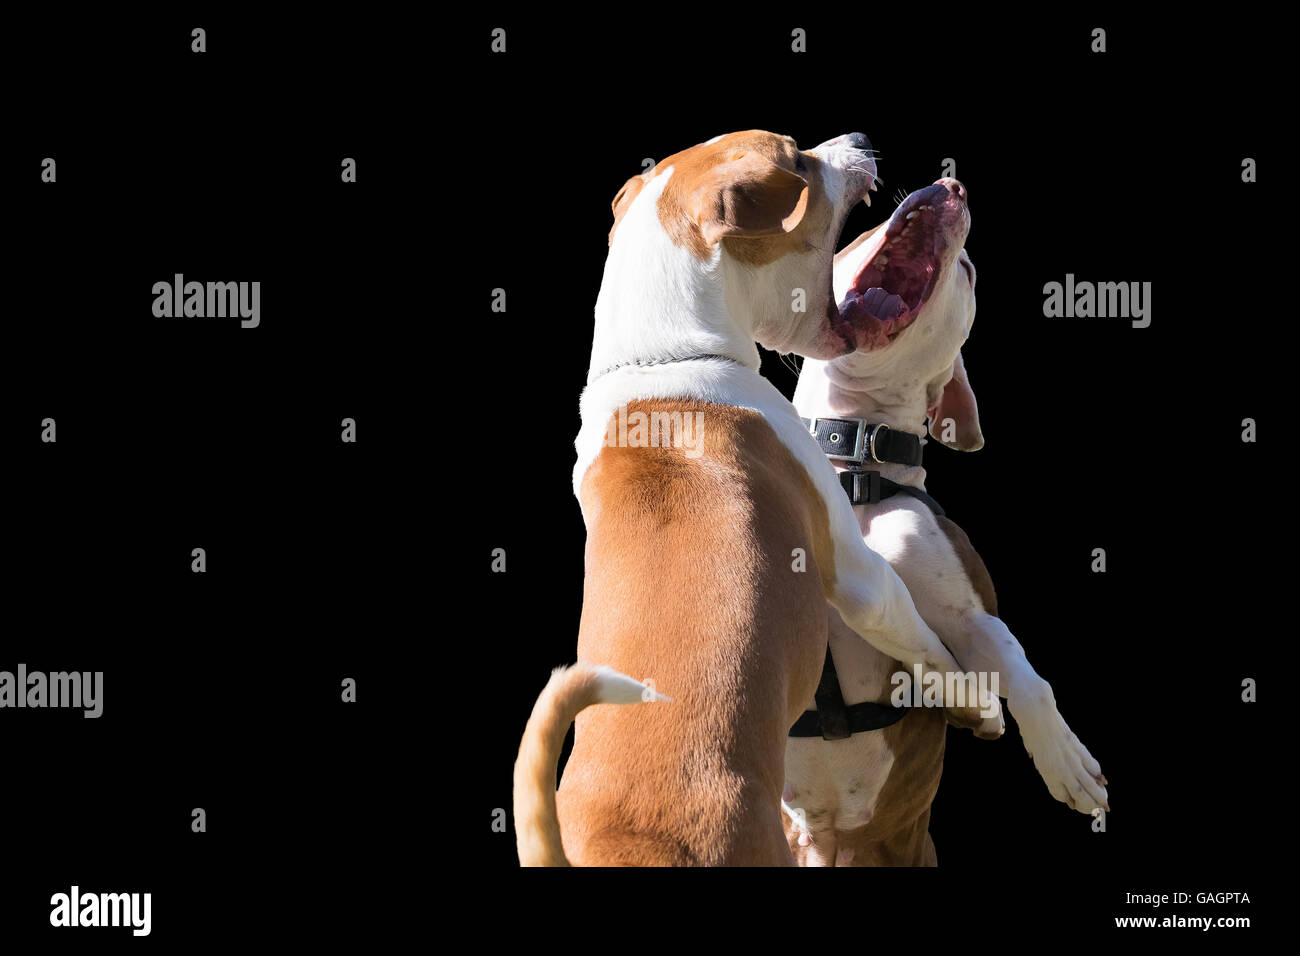 Dogs power isolated on black. - Stock Image